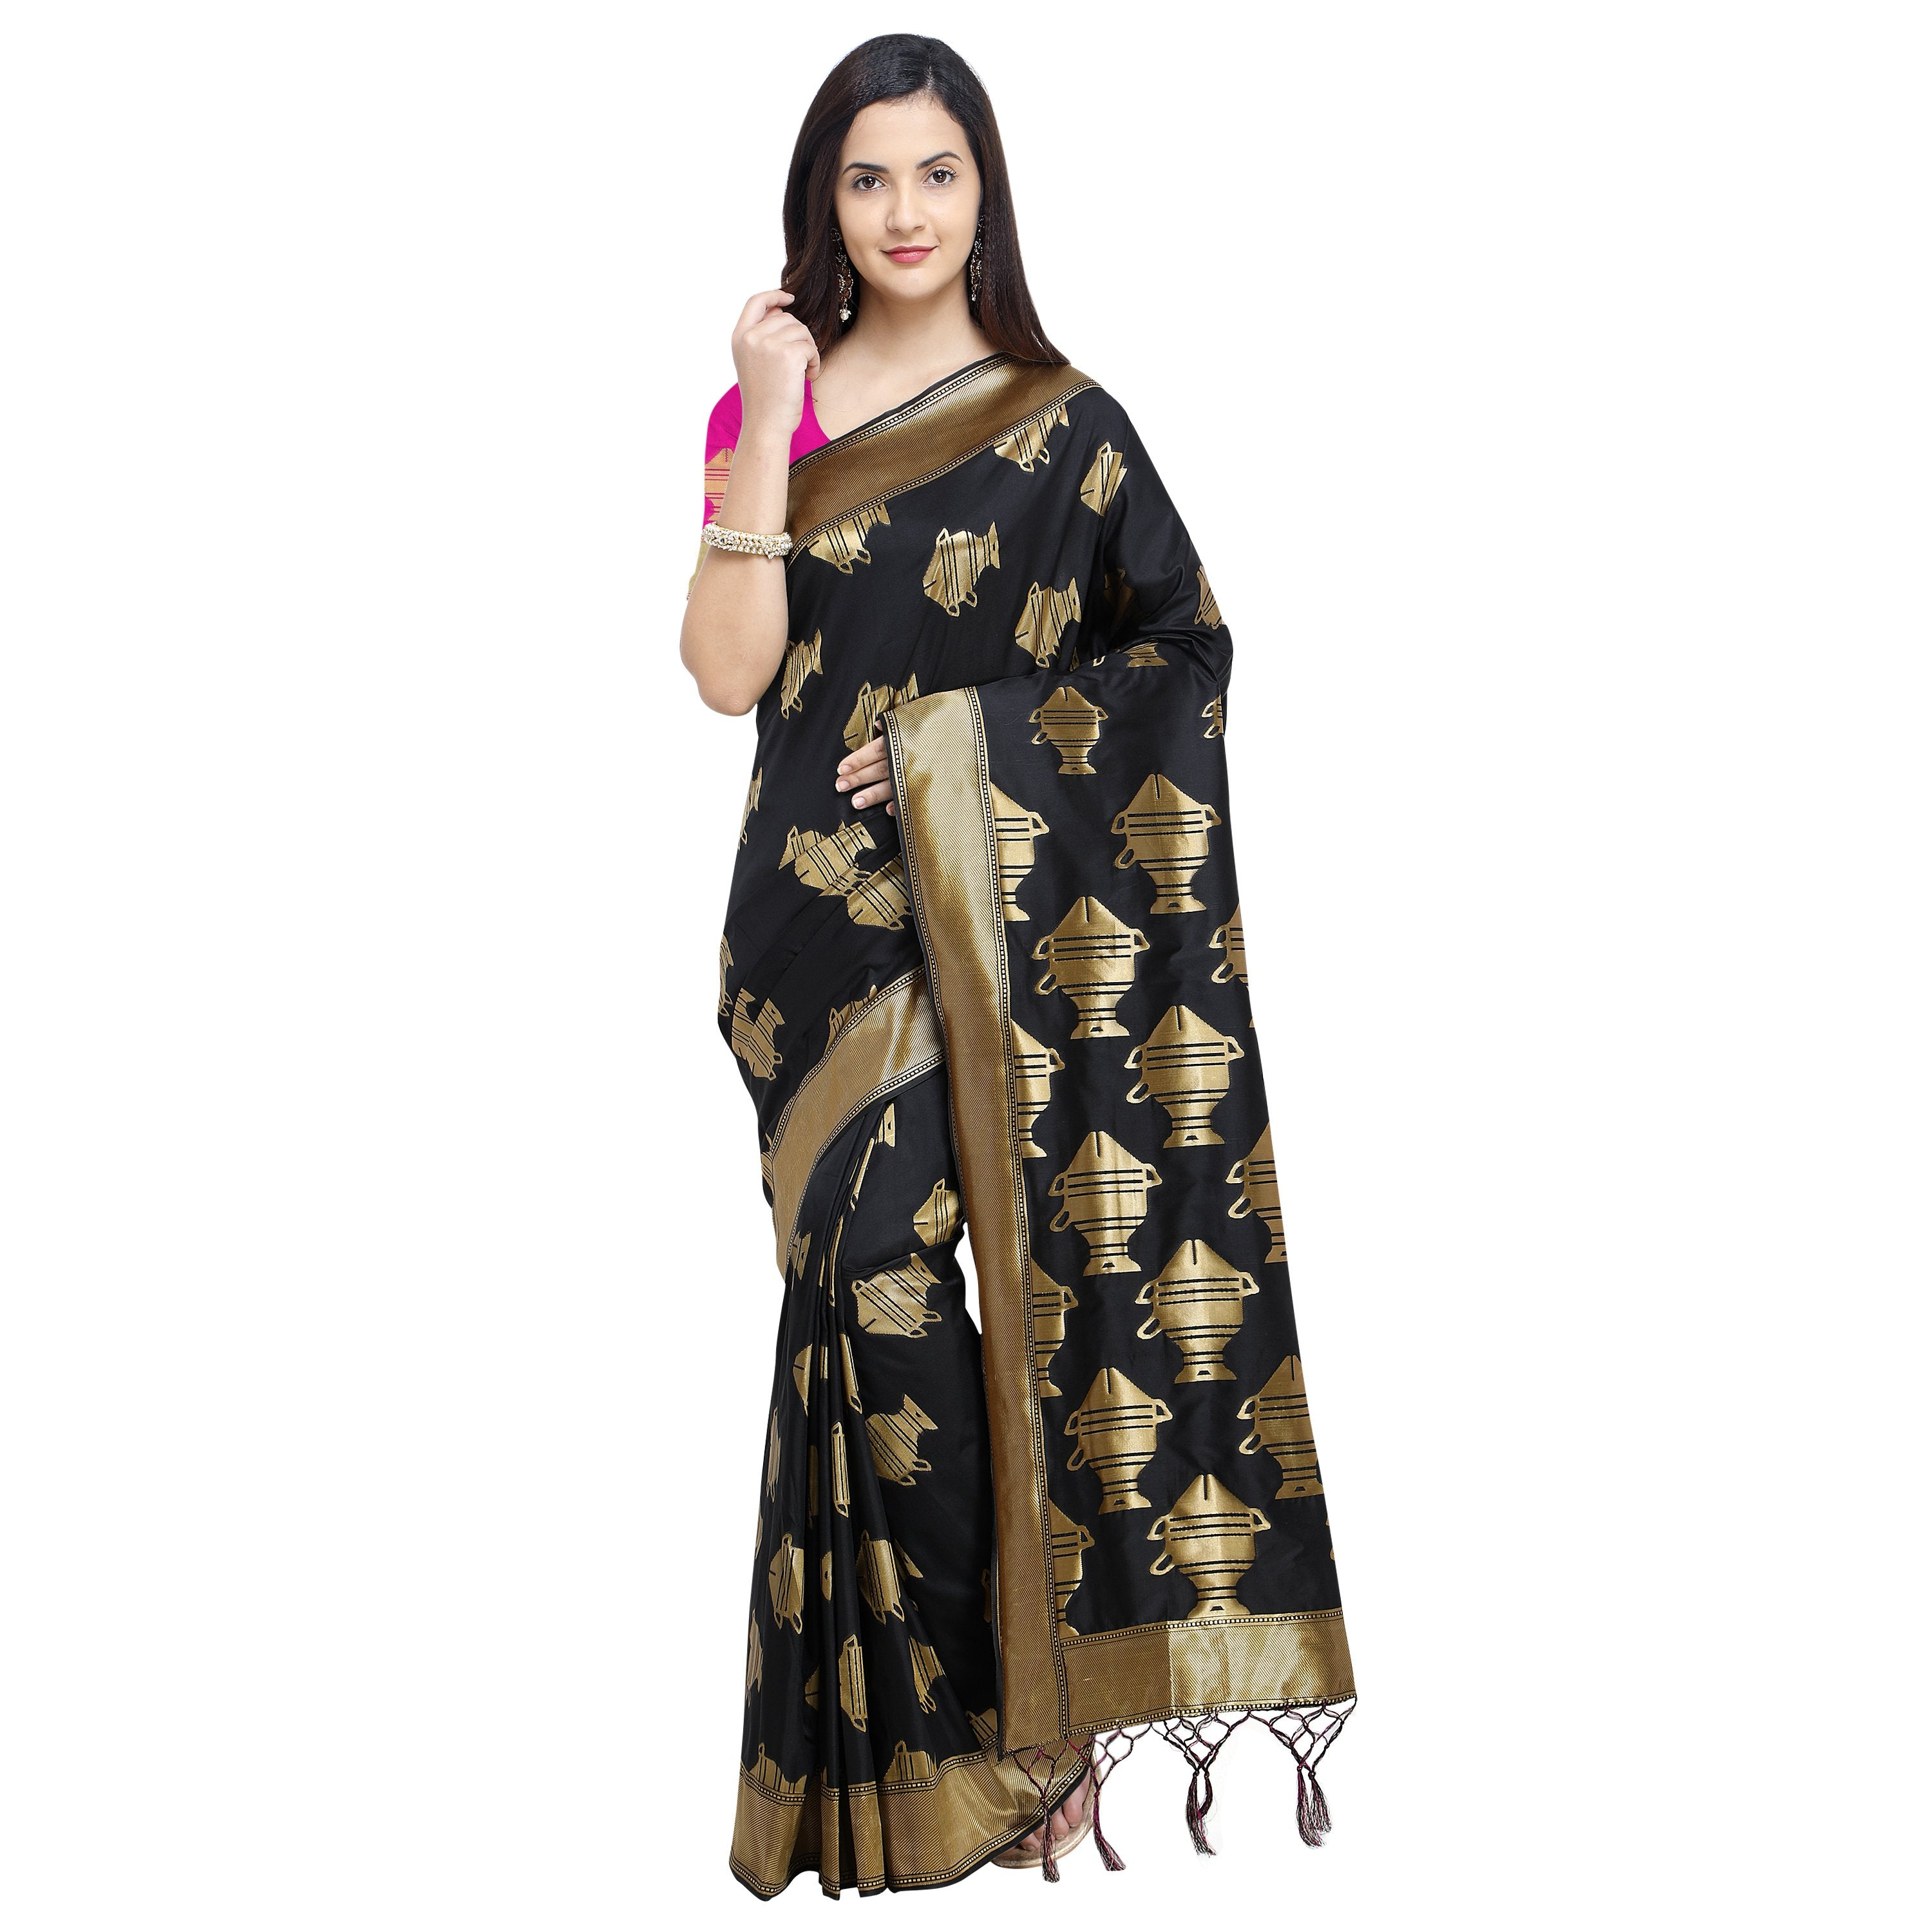 8ffbc2c4b3 Buy Black Color Banarasi Soft Art Silk Saree | Zinnga